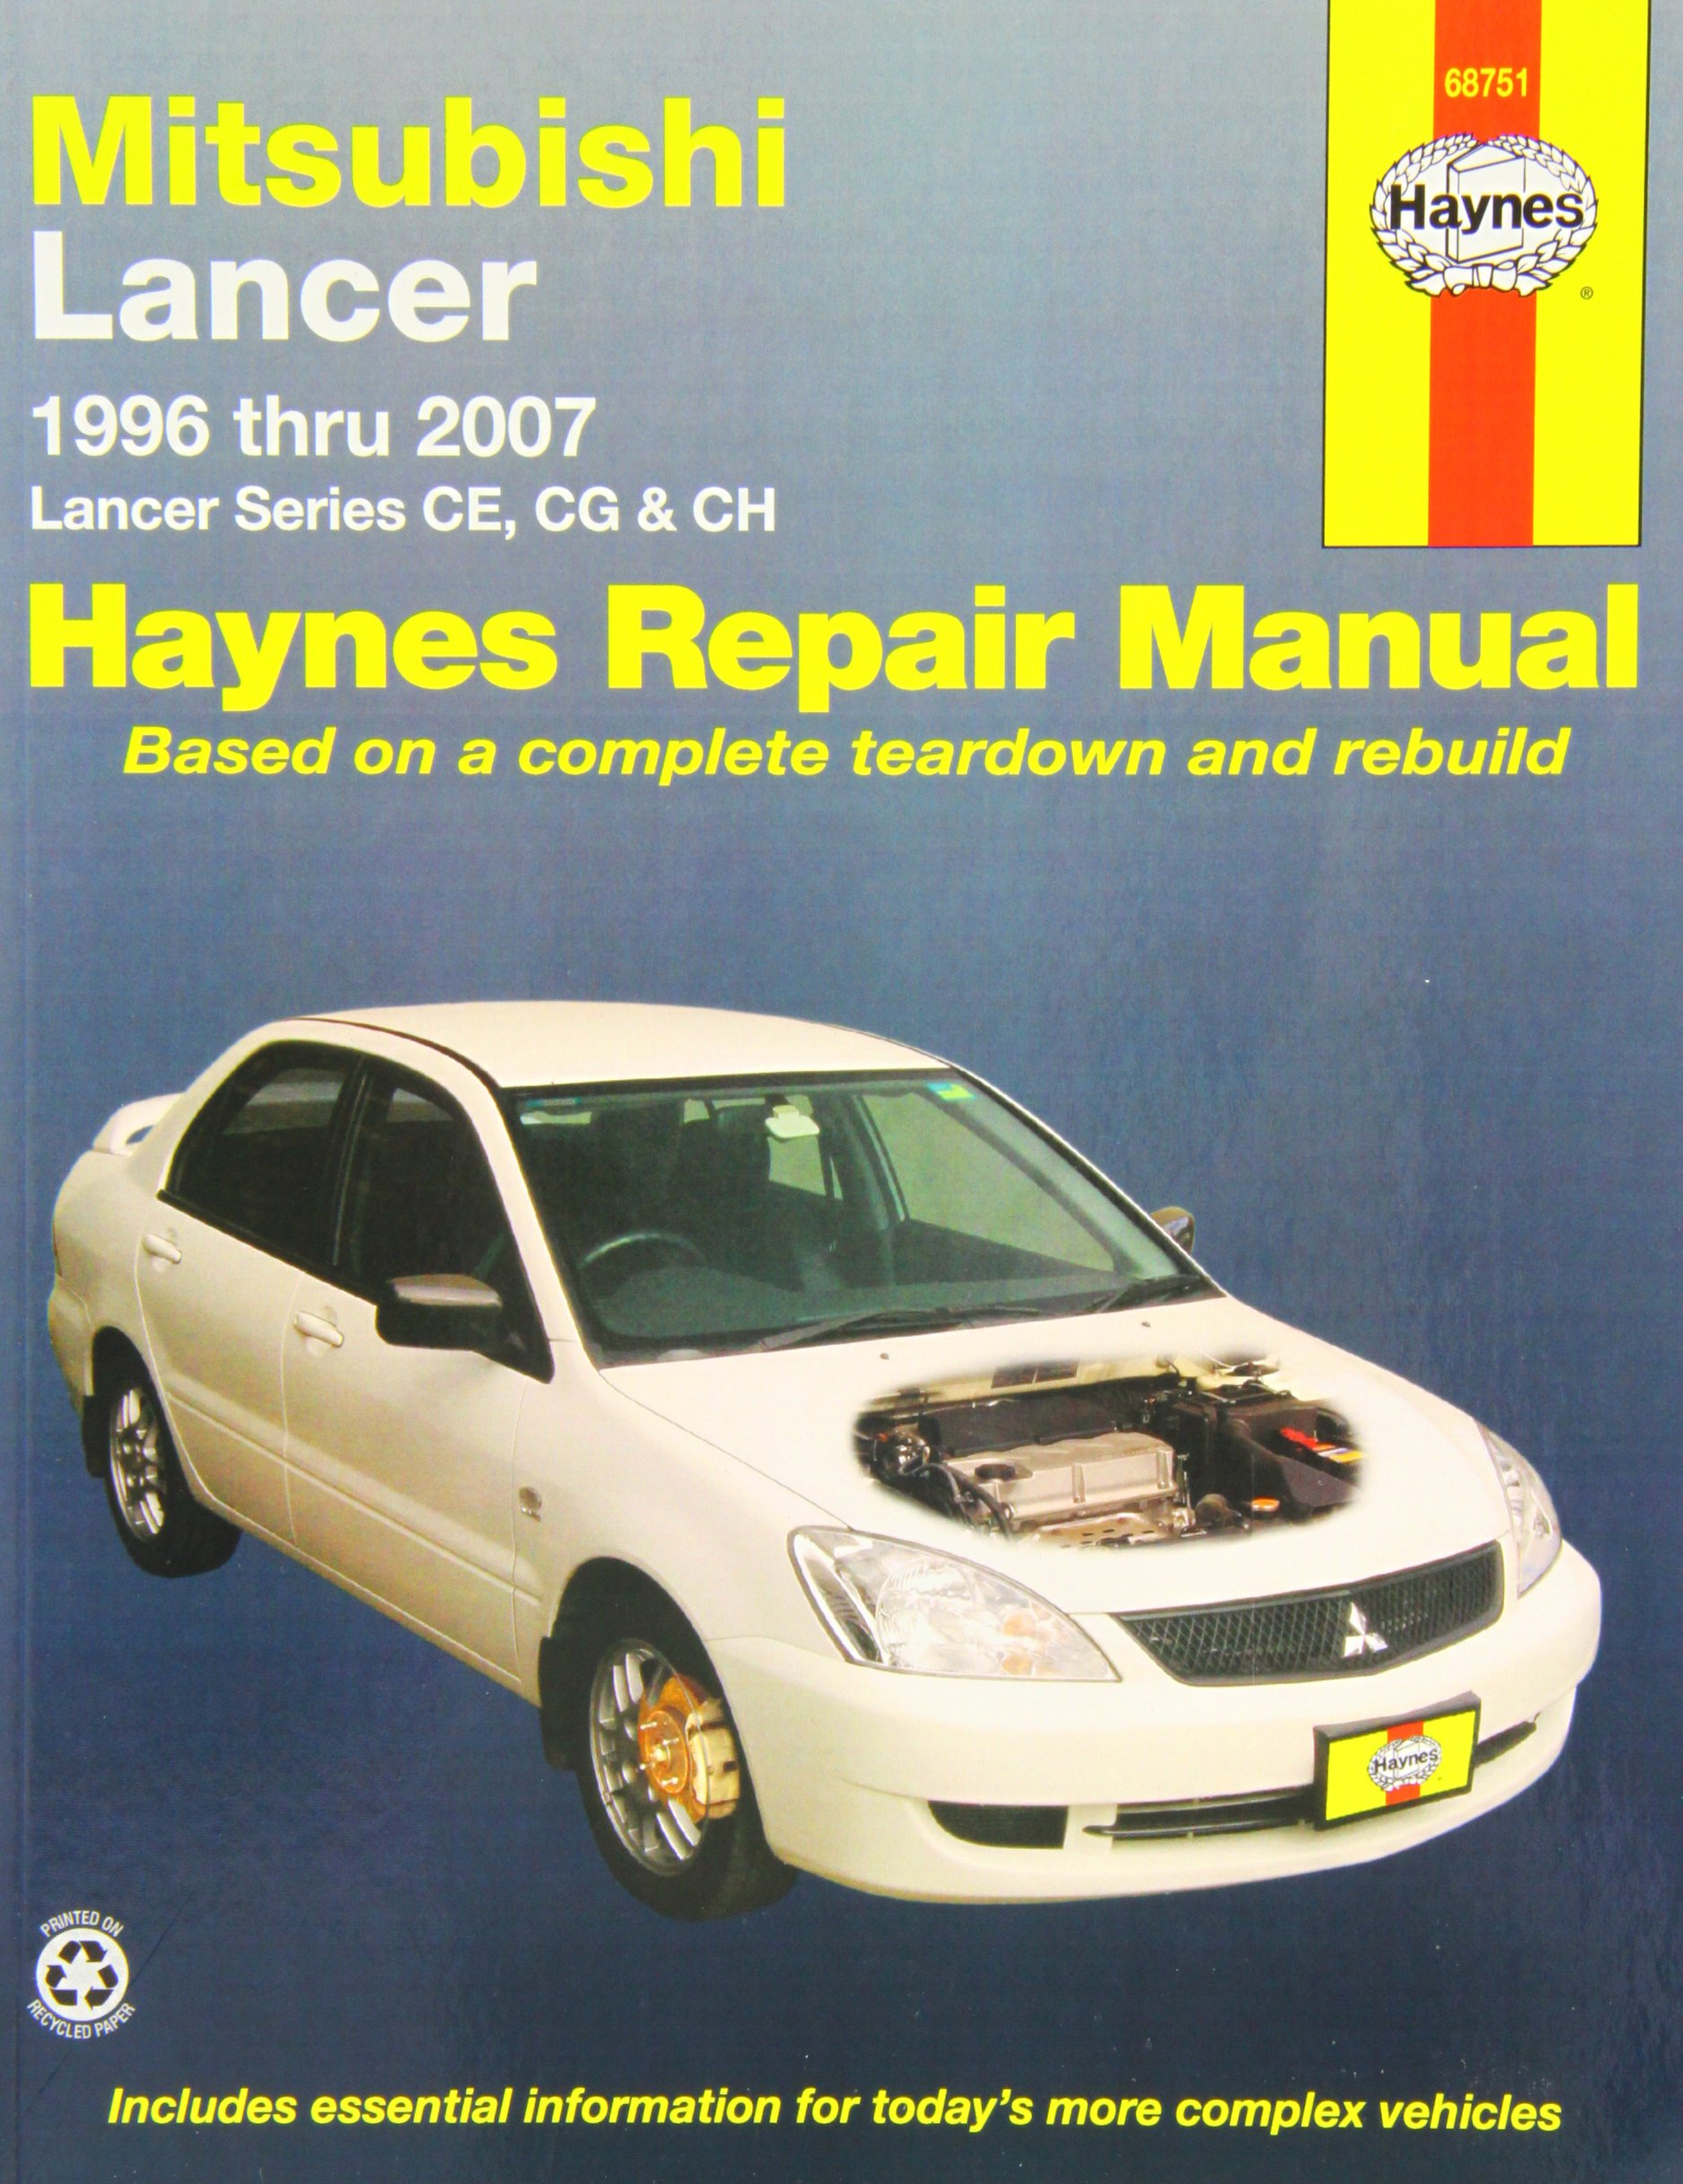 Mitsubishi lancer automotive repair manual haynes automotive mitsubishi lancer automotive repair manual haynes automotive repair manuals 9781563929403 amazon books fandeluxe Image collections